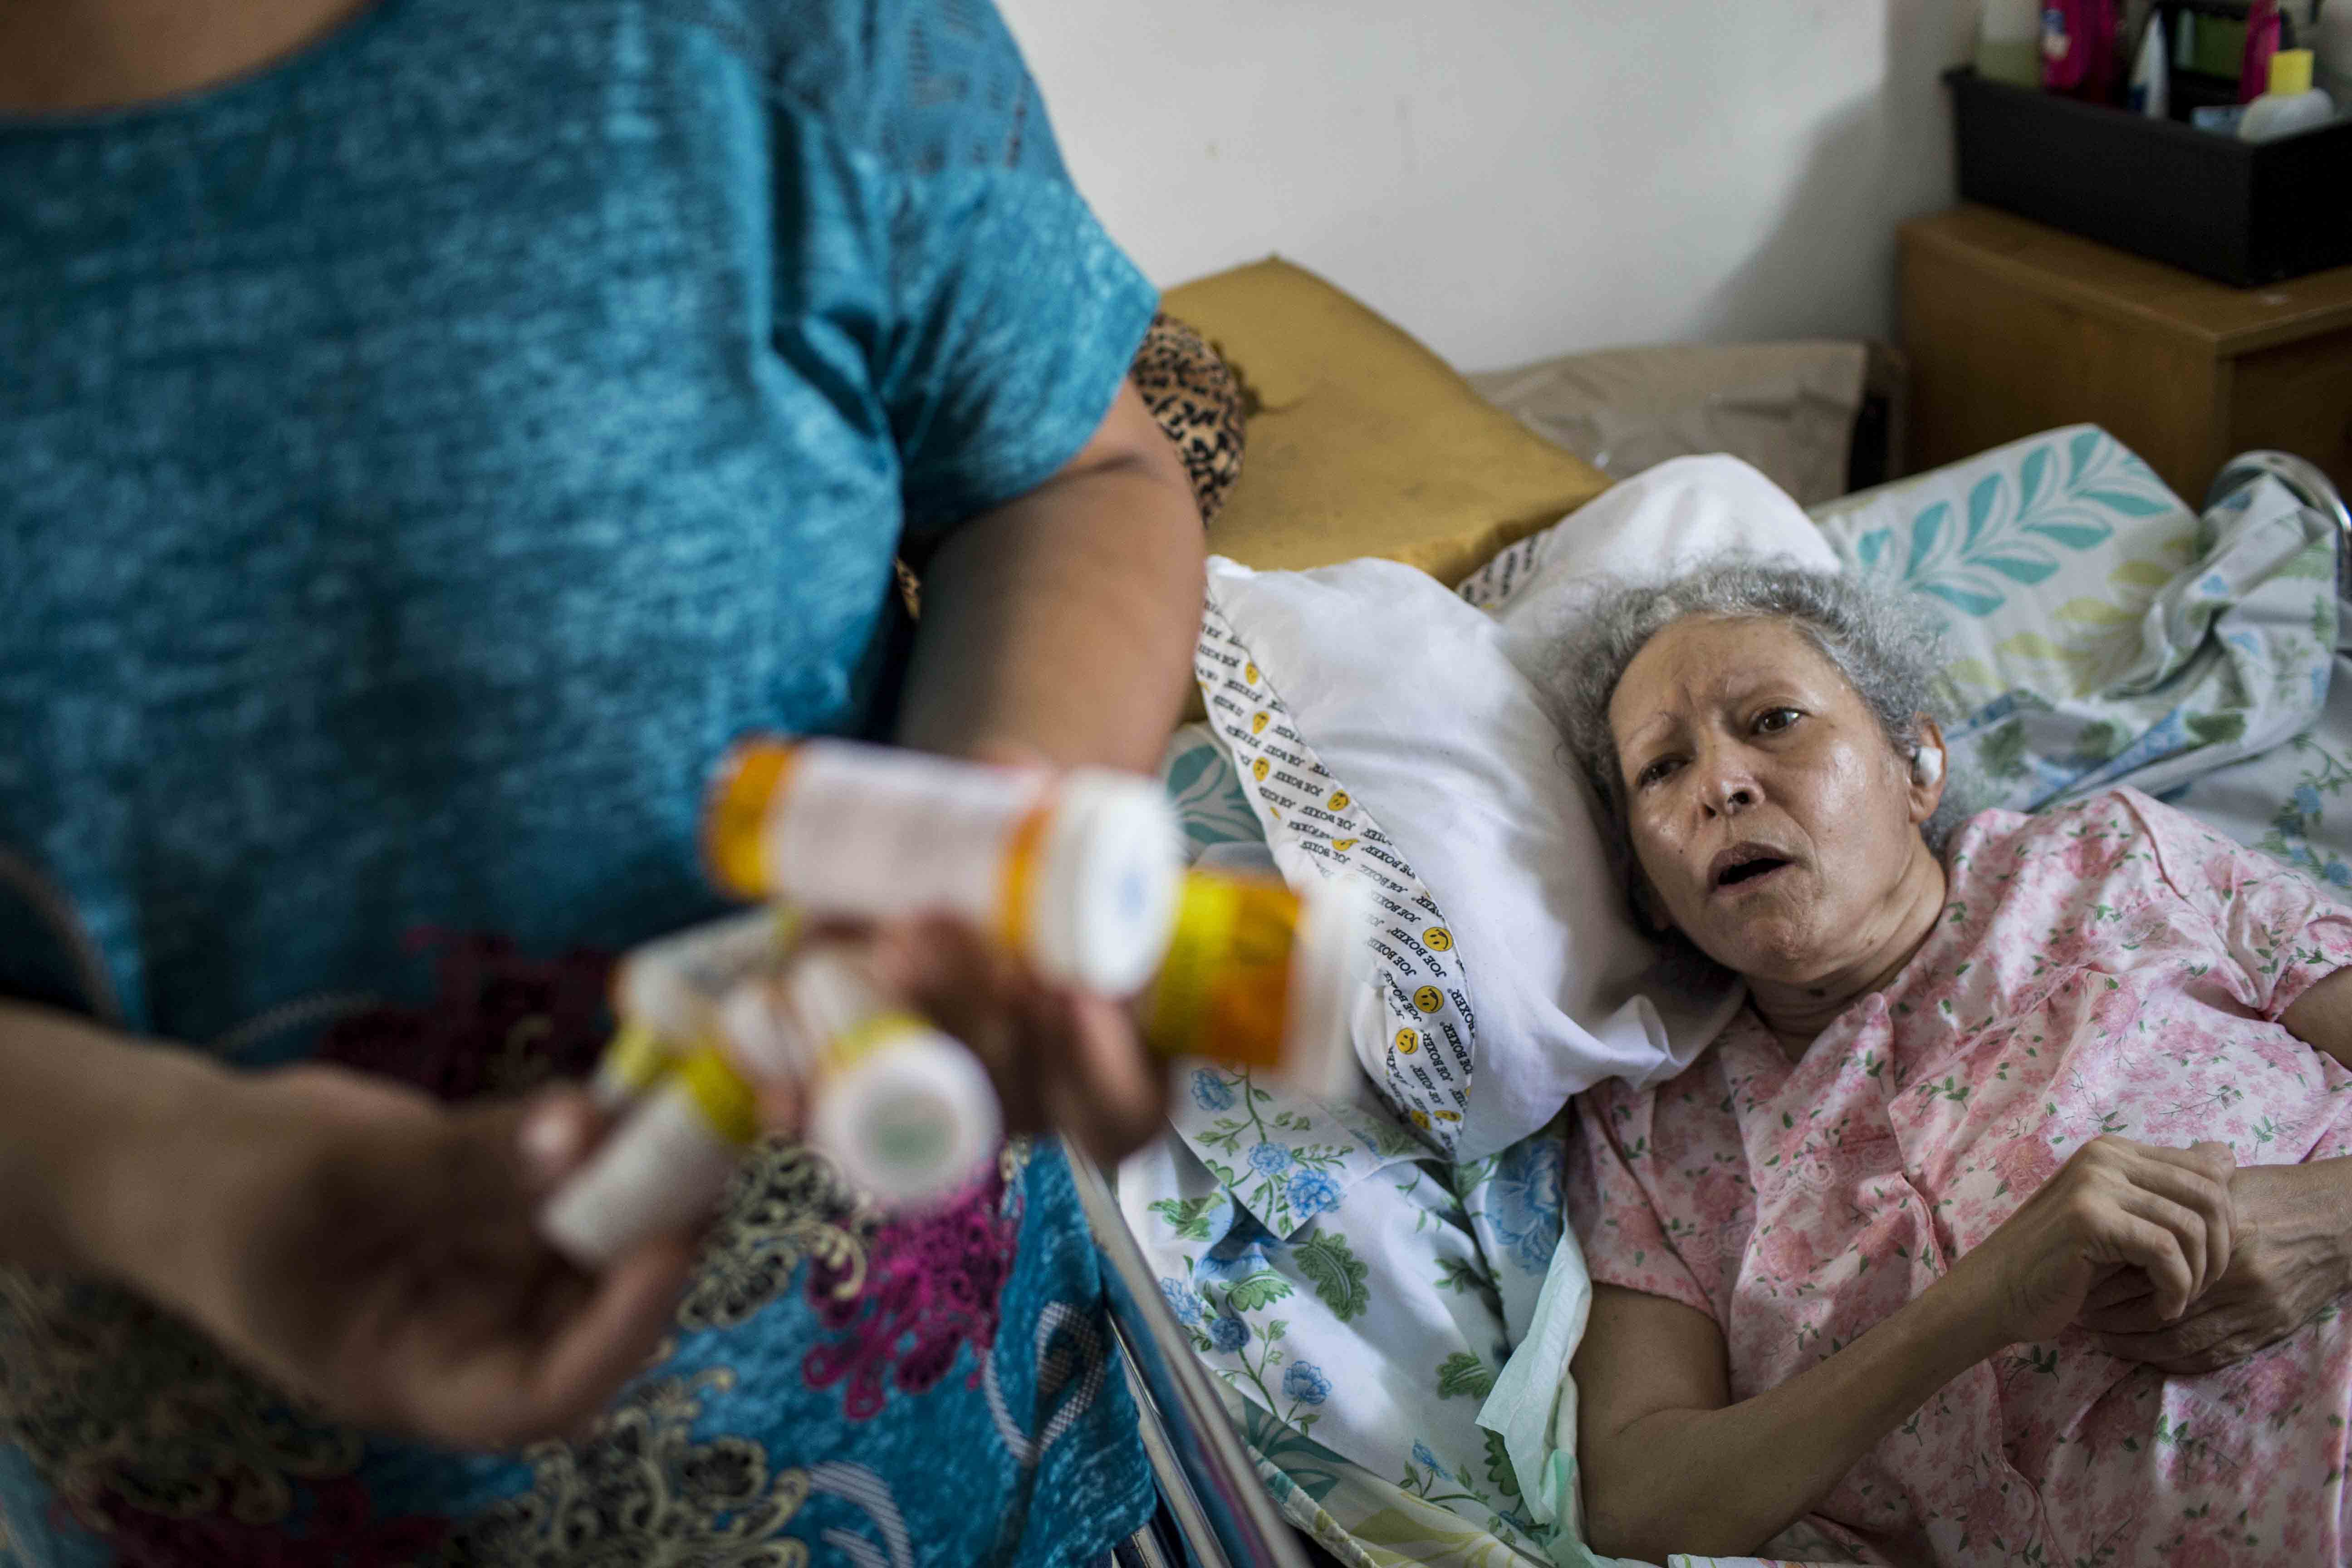 JUNCOS PUERTO RICO SEPTEMBER 24: Marry Ann Aldea holds her mother Maria Dolores Hernandez medicines at her home.